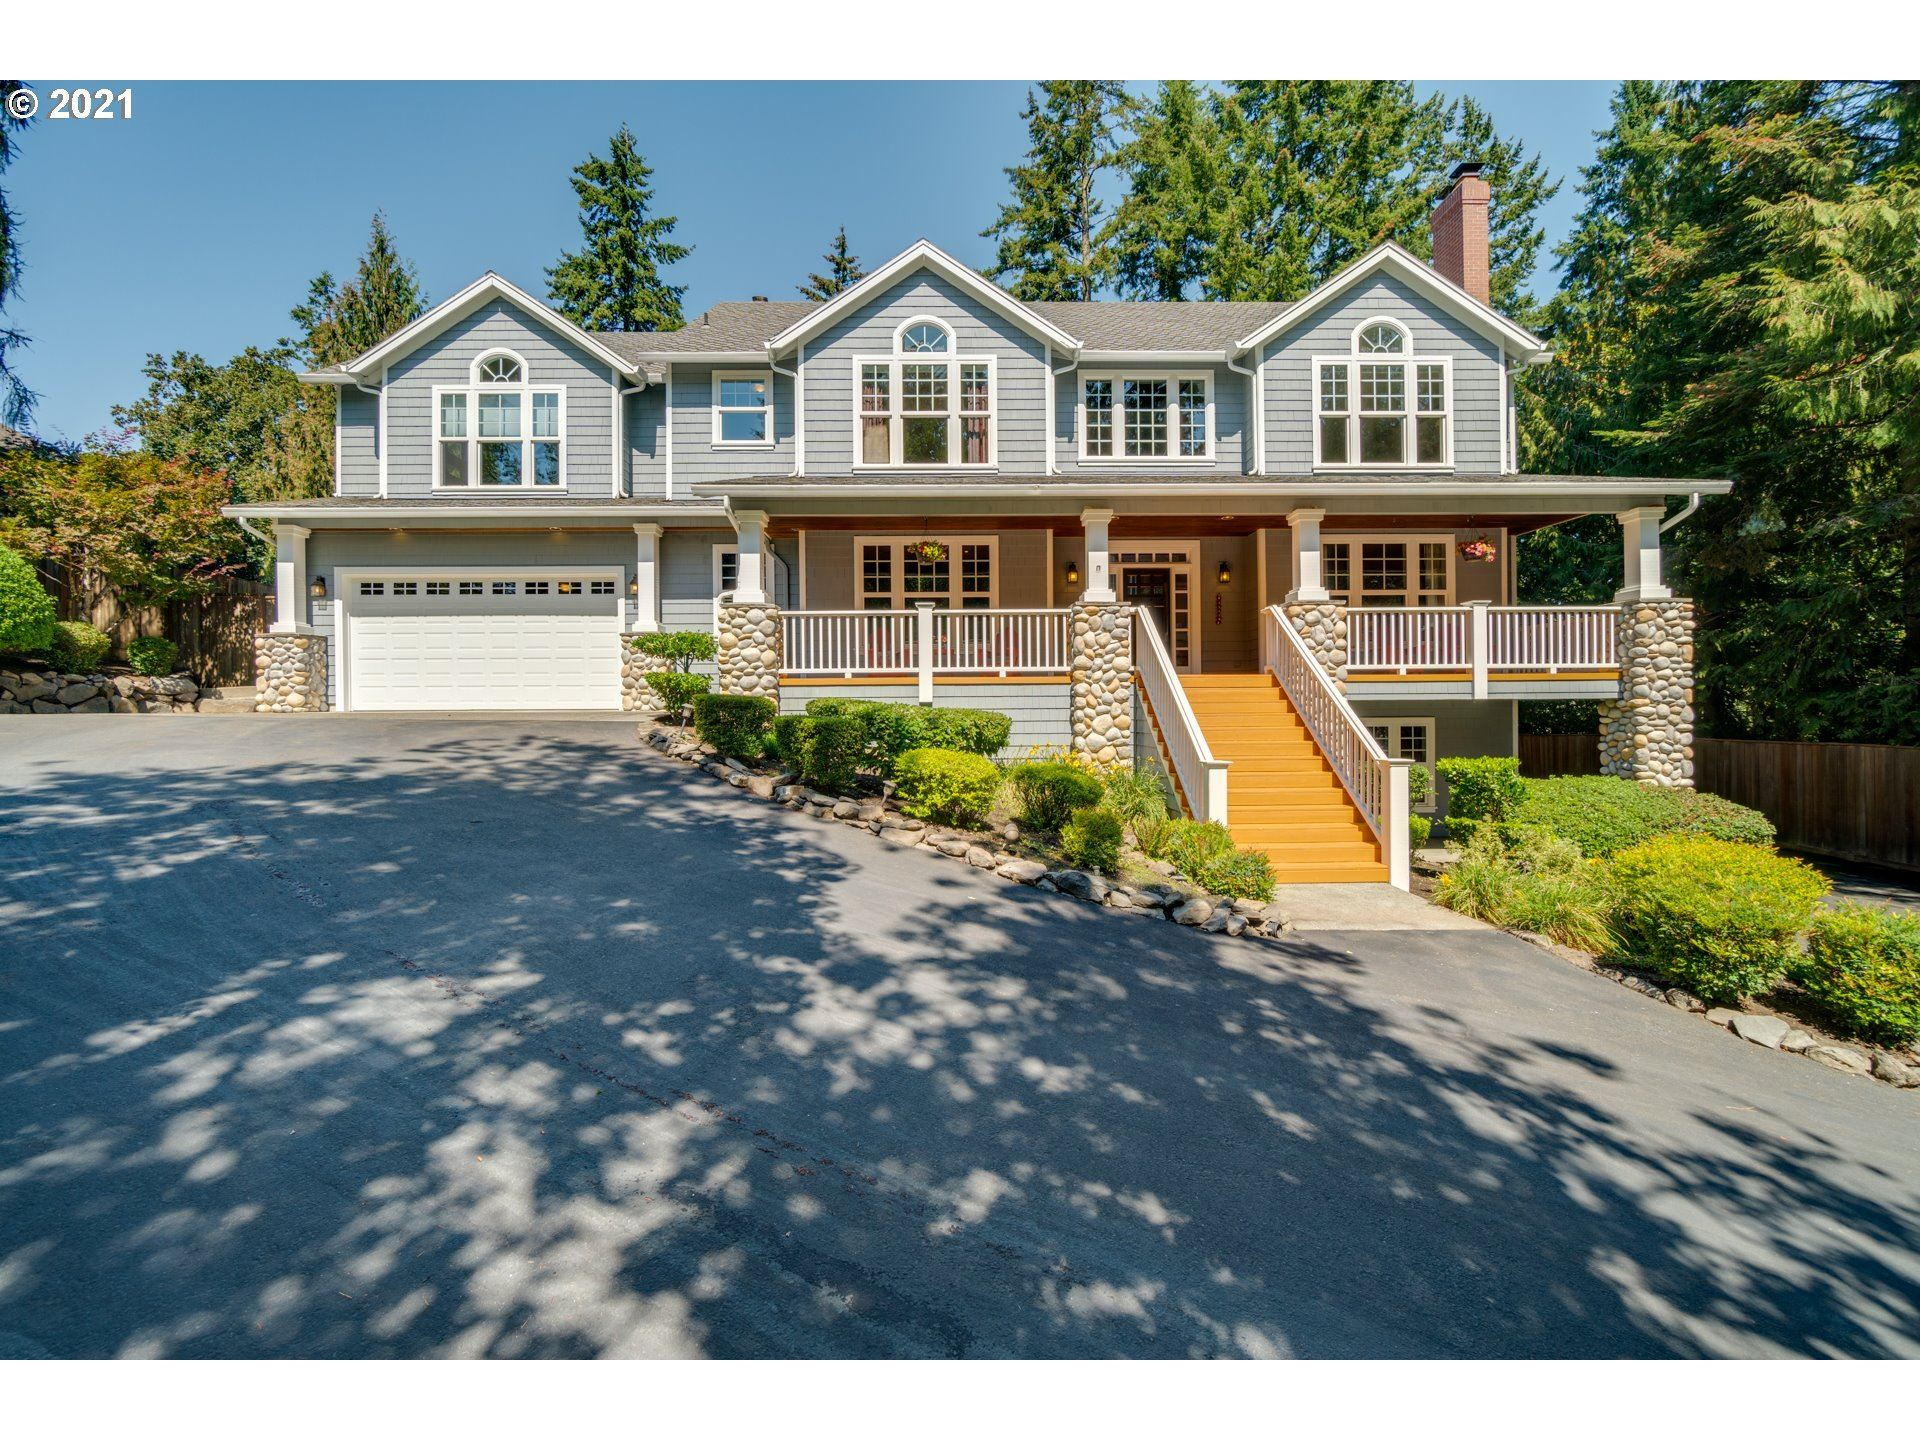 24325 SW PETES MOUNTAIN RD, West Linn, OR 97068 - #: 21215445